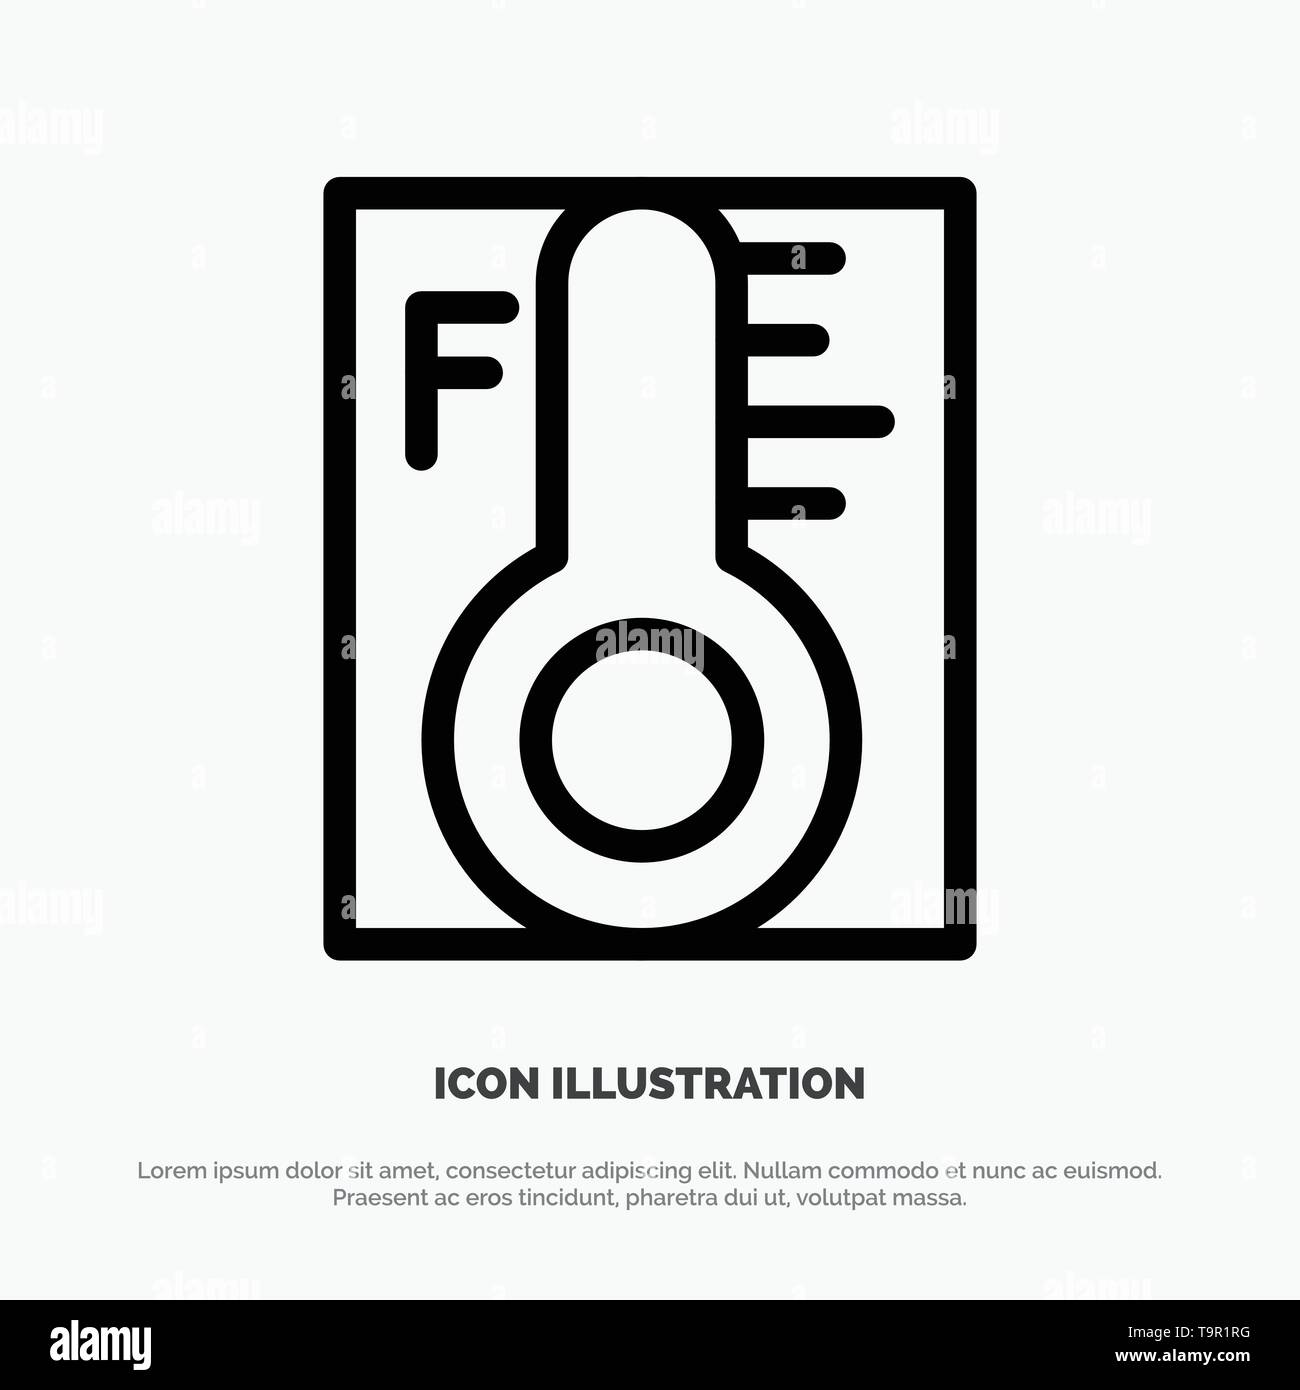 Cloud, Light, Rainy, Sun, Temperature Line Icon Vector - Stock Image